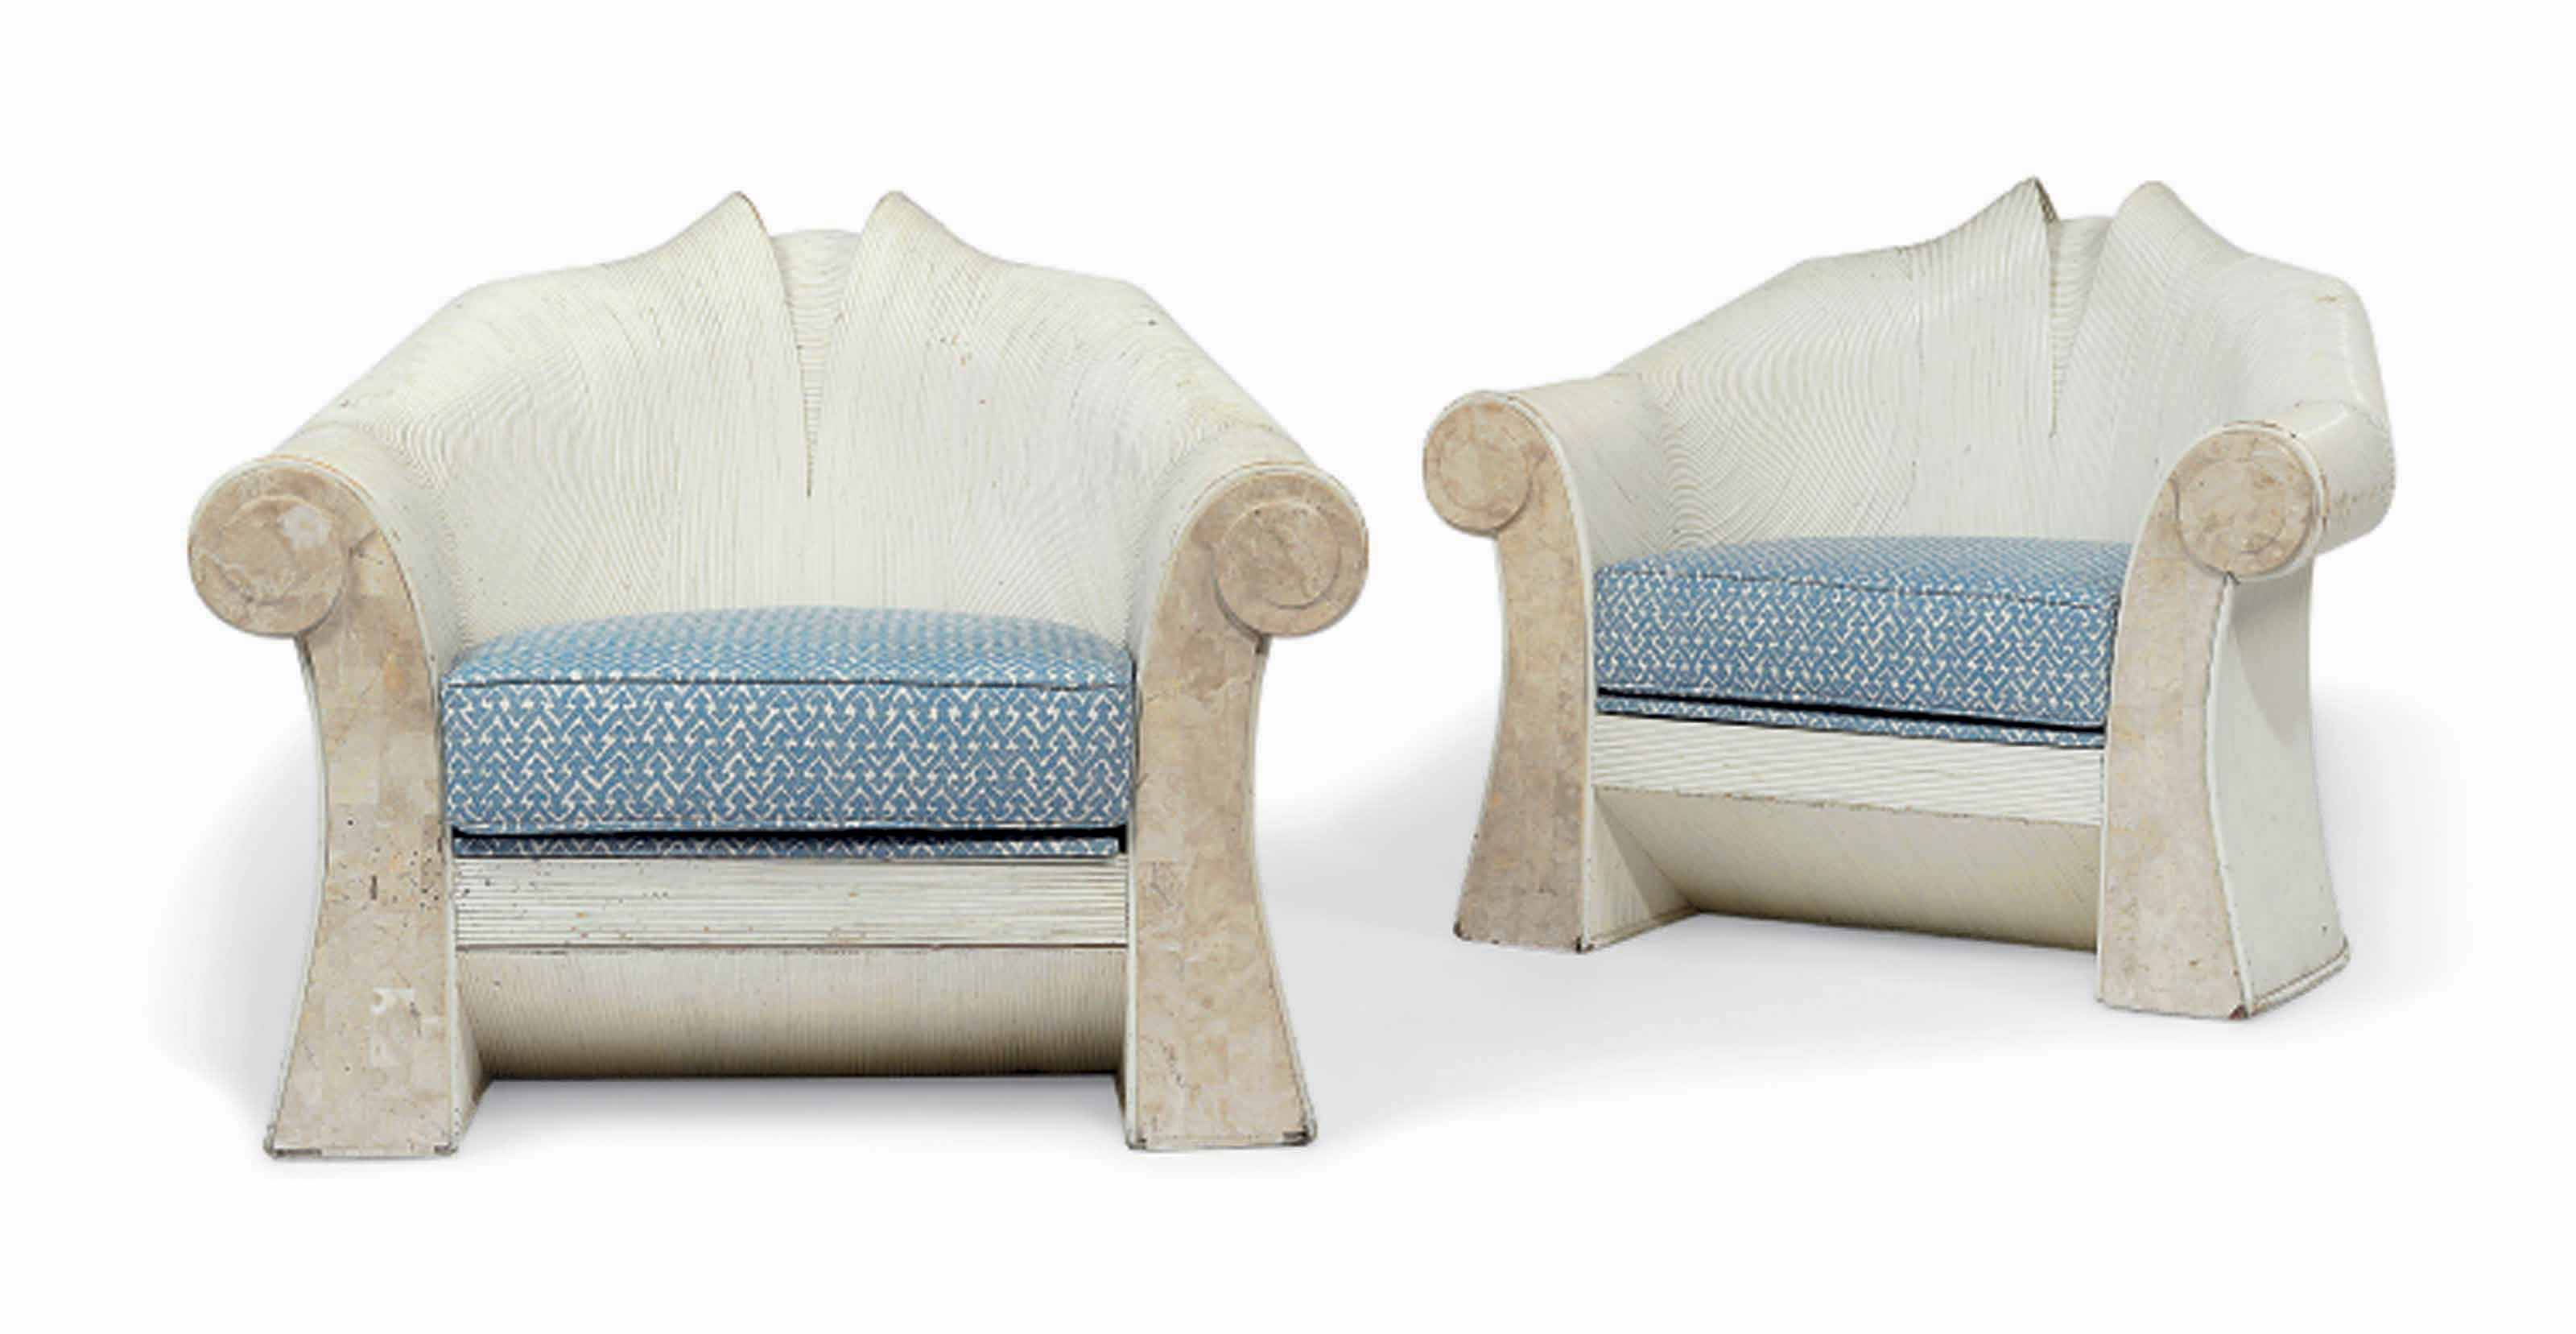 A PAIR OF WHITE-PAINTED AND TESSELLATED-TRAVERTINE AND REED ARMCHAIRS